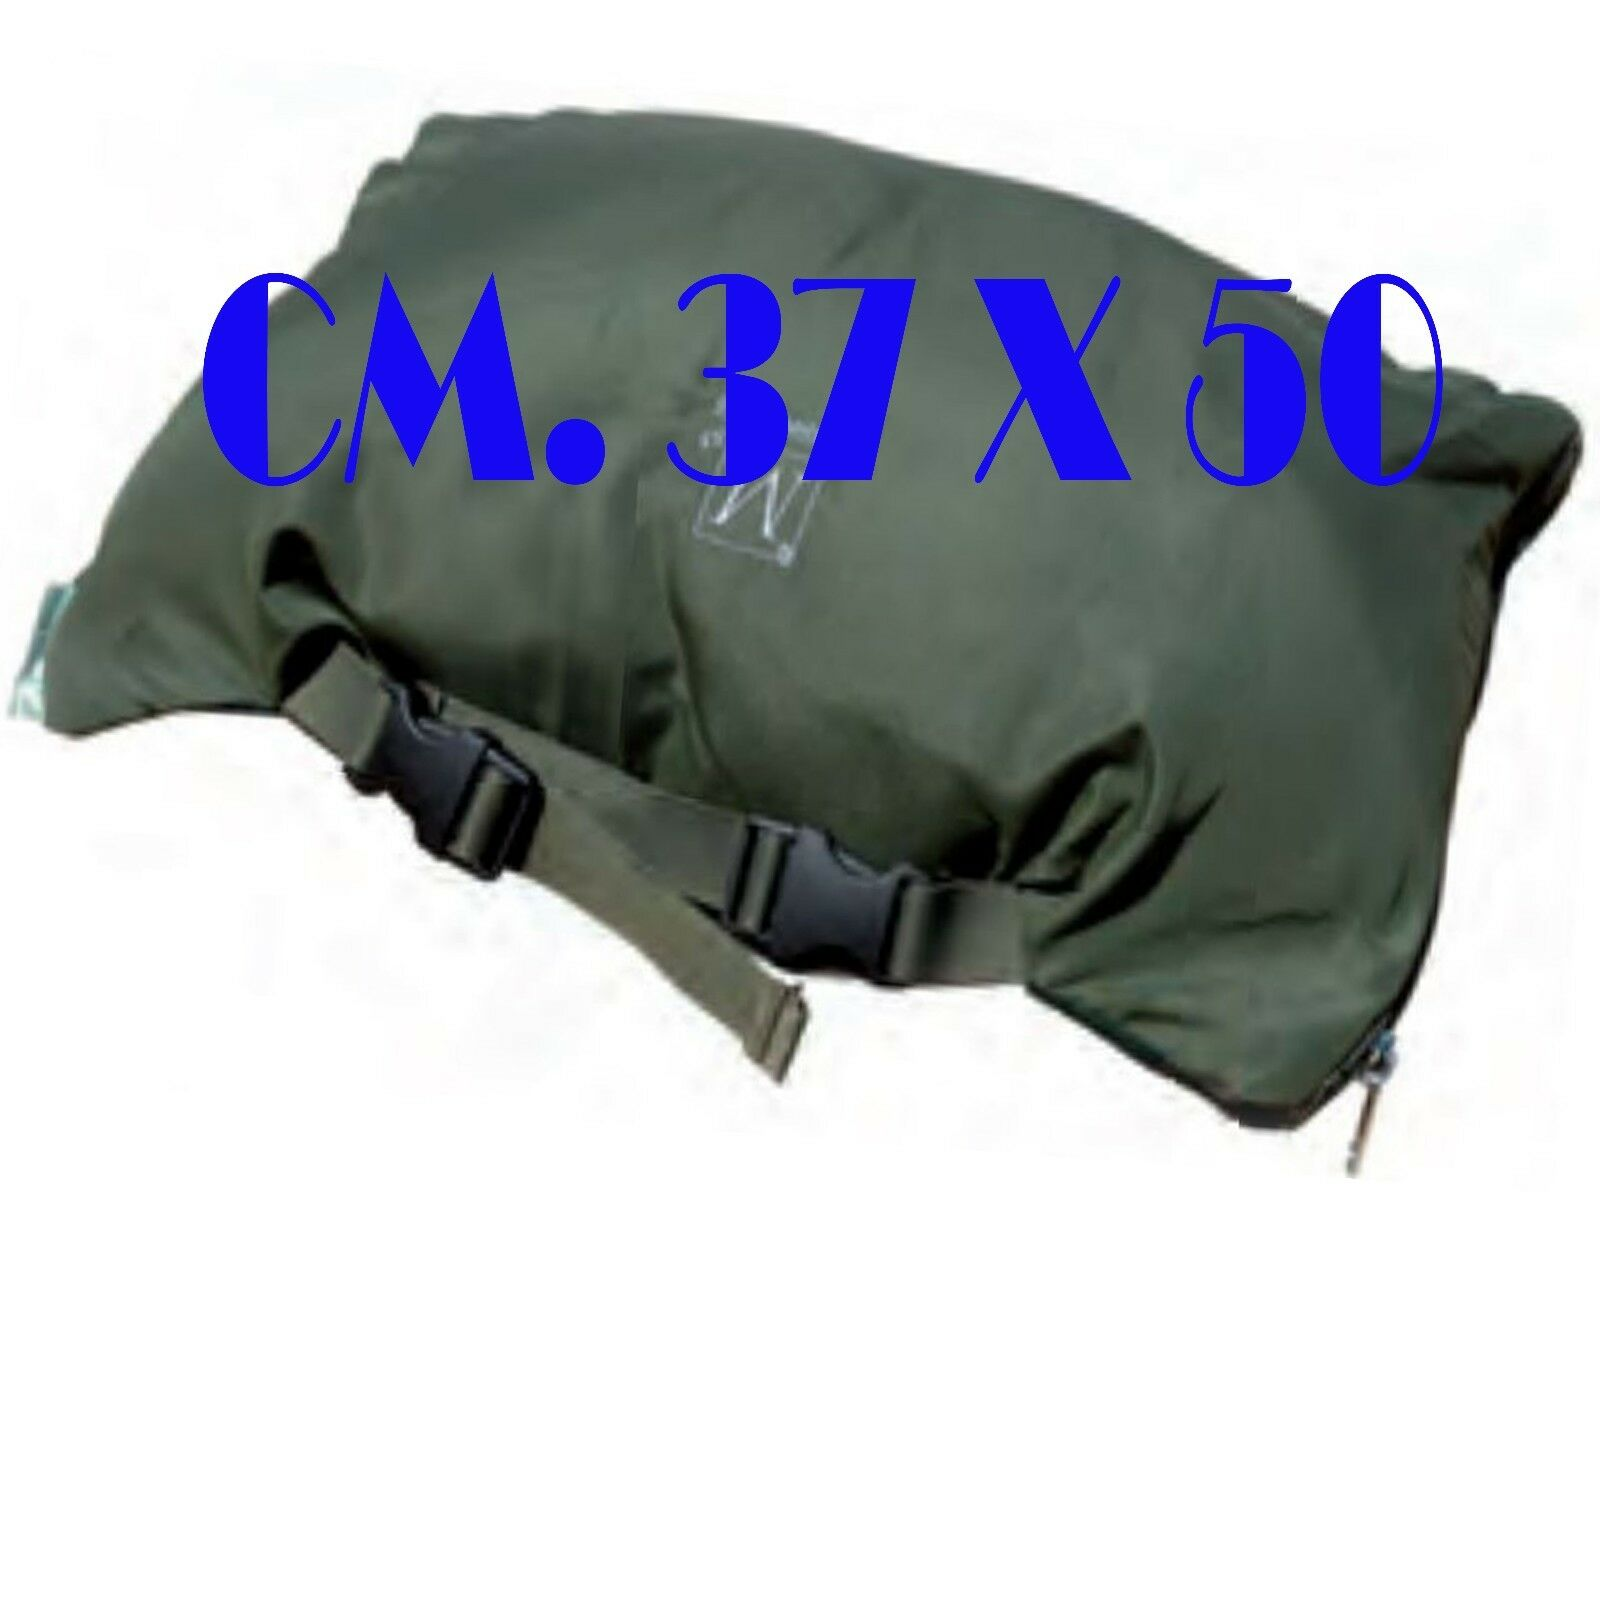 LETTINO CARPFISHING CUSCINO PER LETTINO CARP FISHING SEDIA CUSCINO CAMPEGGIO